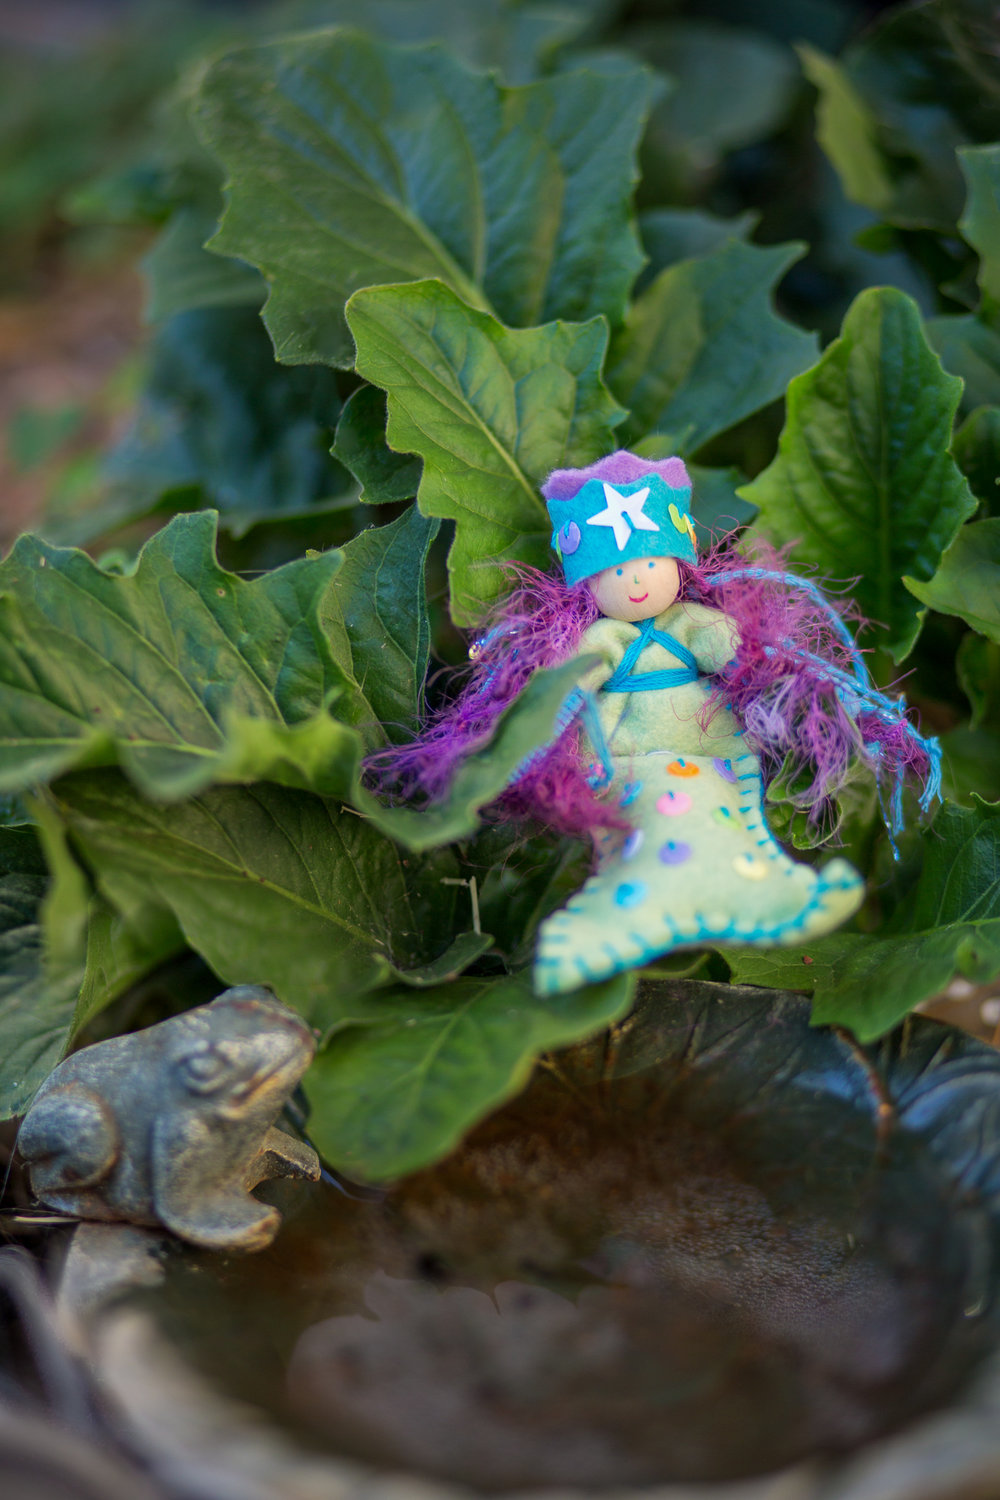 MermaidForestFairyCraftsAug2016-8.jpg